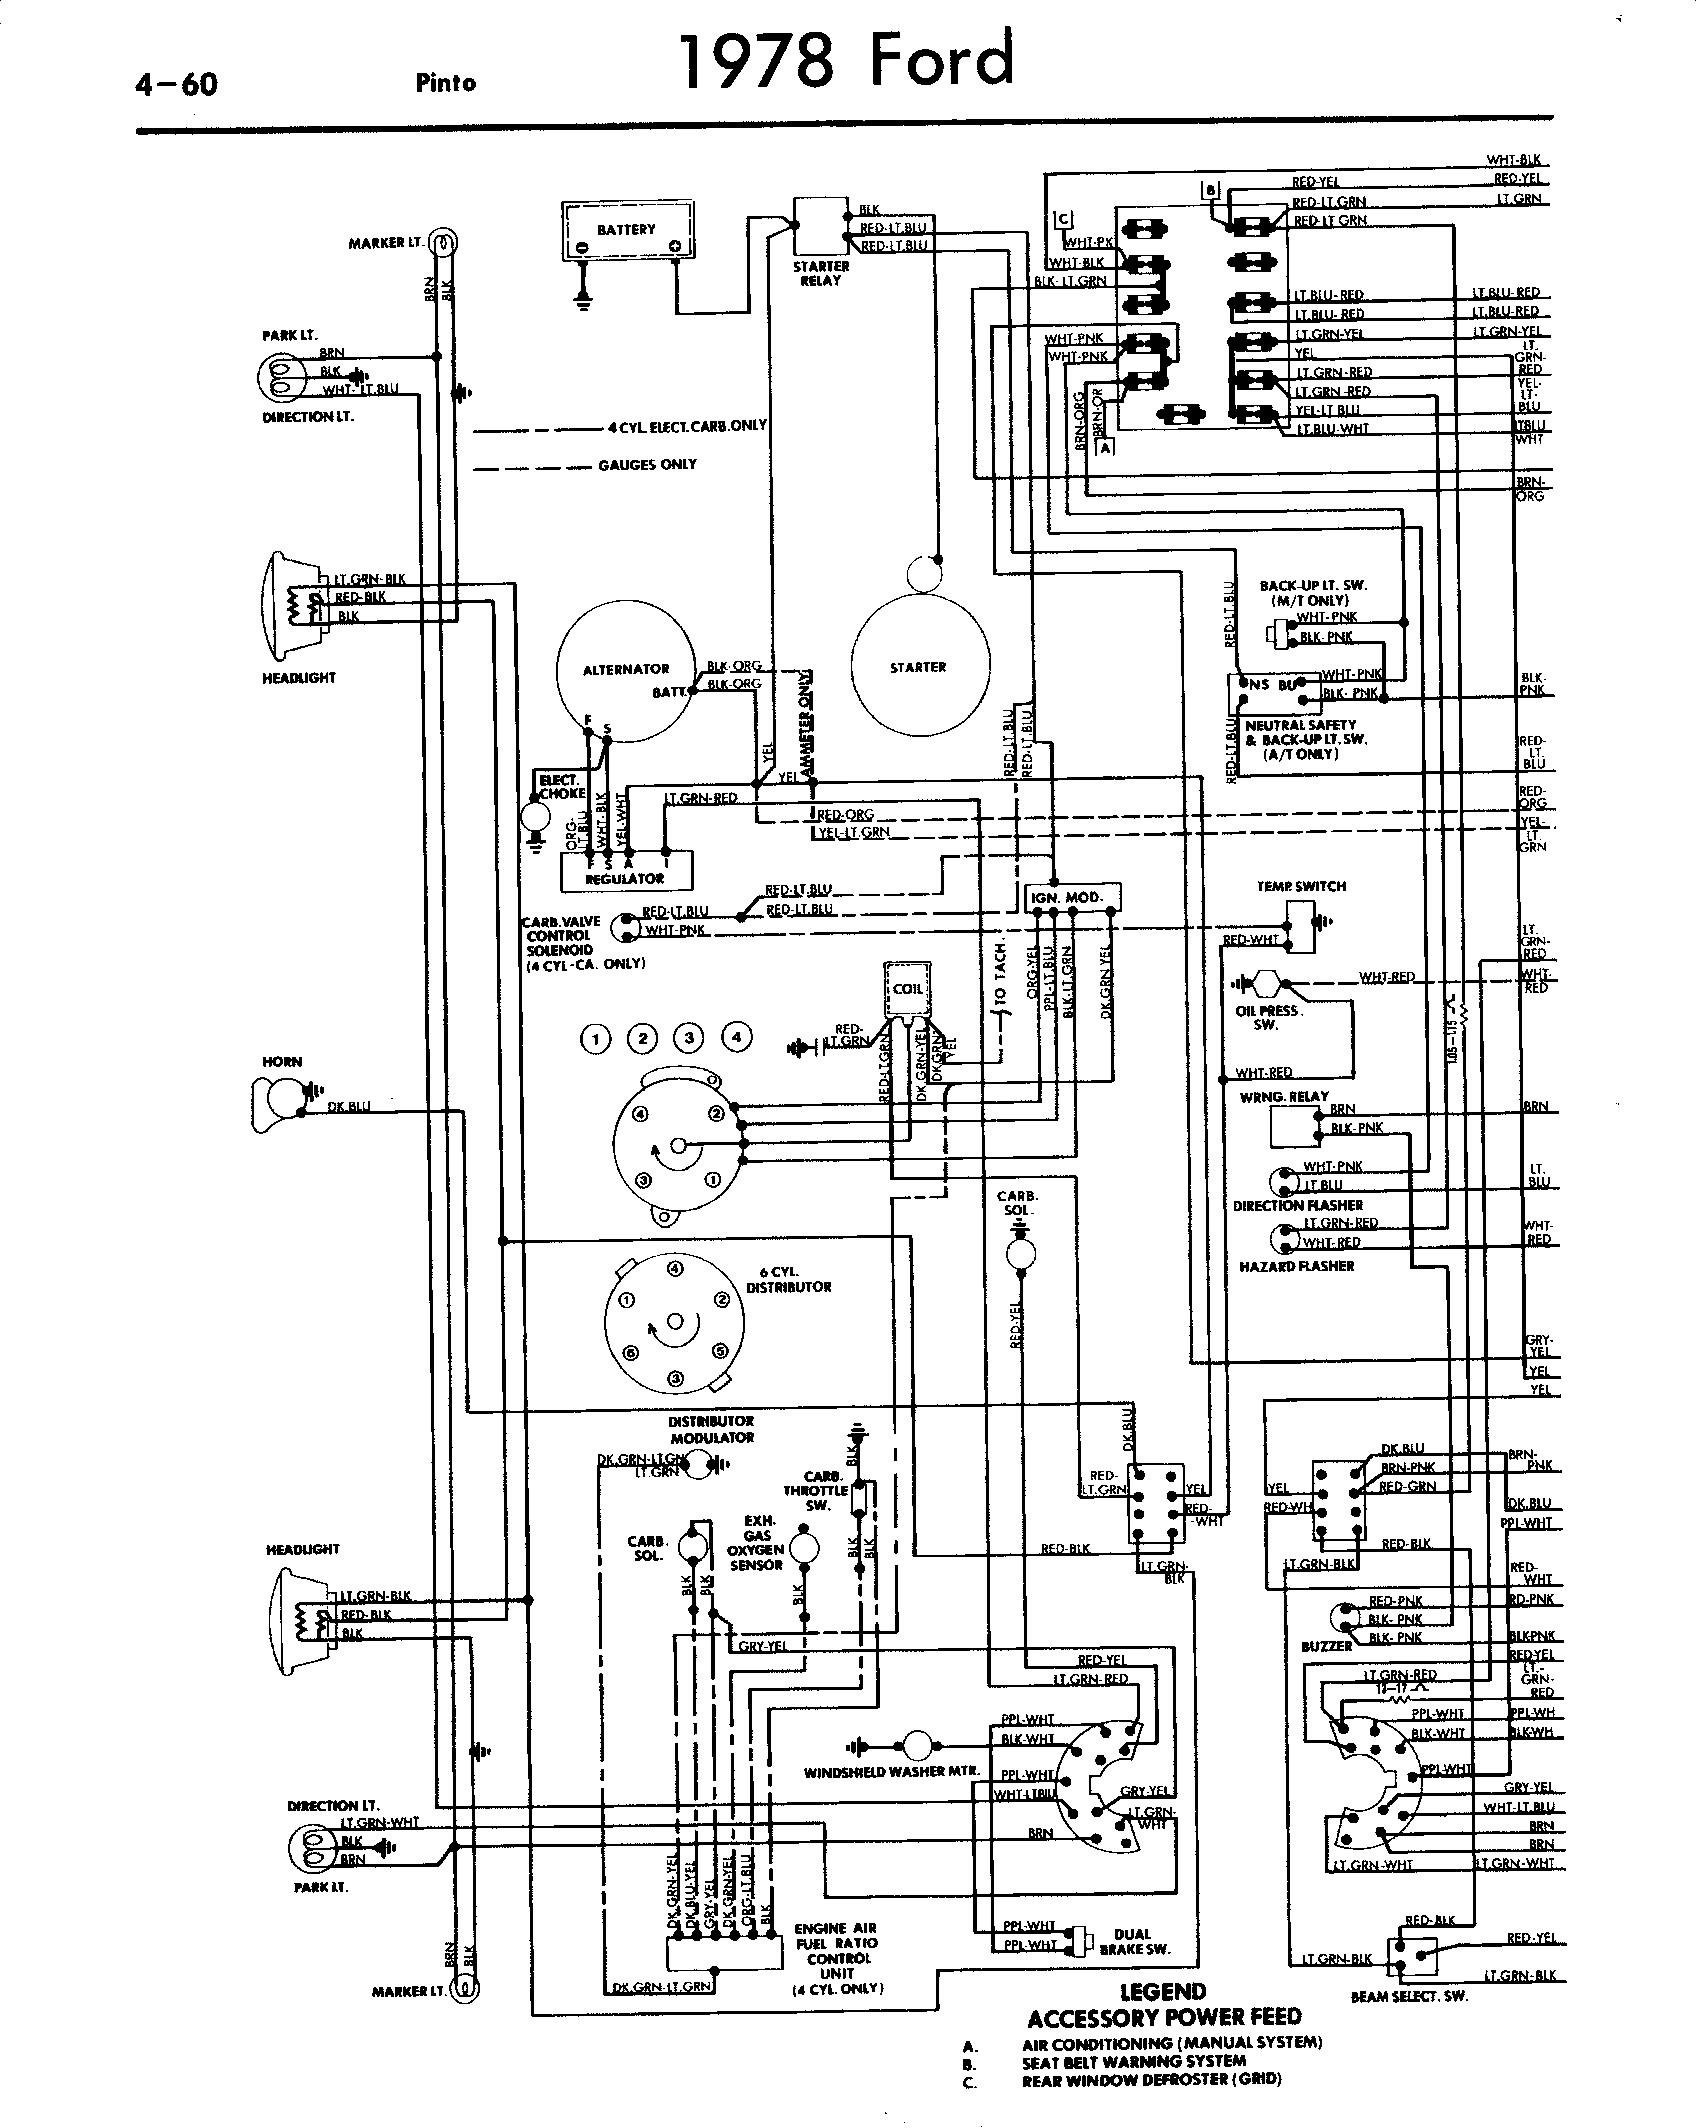 Diesel Engine Fuel System Diagram Dodge Cummins Line Obd2 Wiring 01 7 3 Wire Info Of